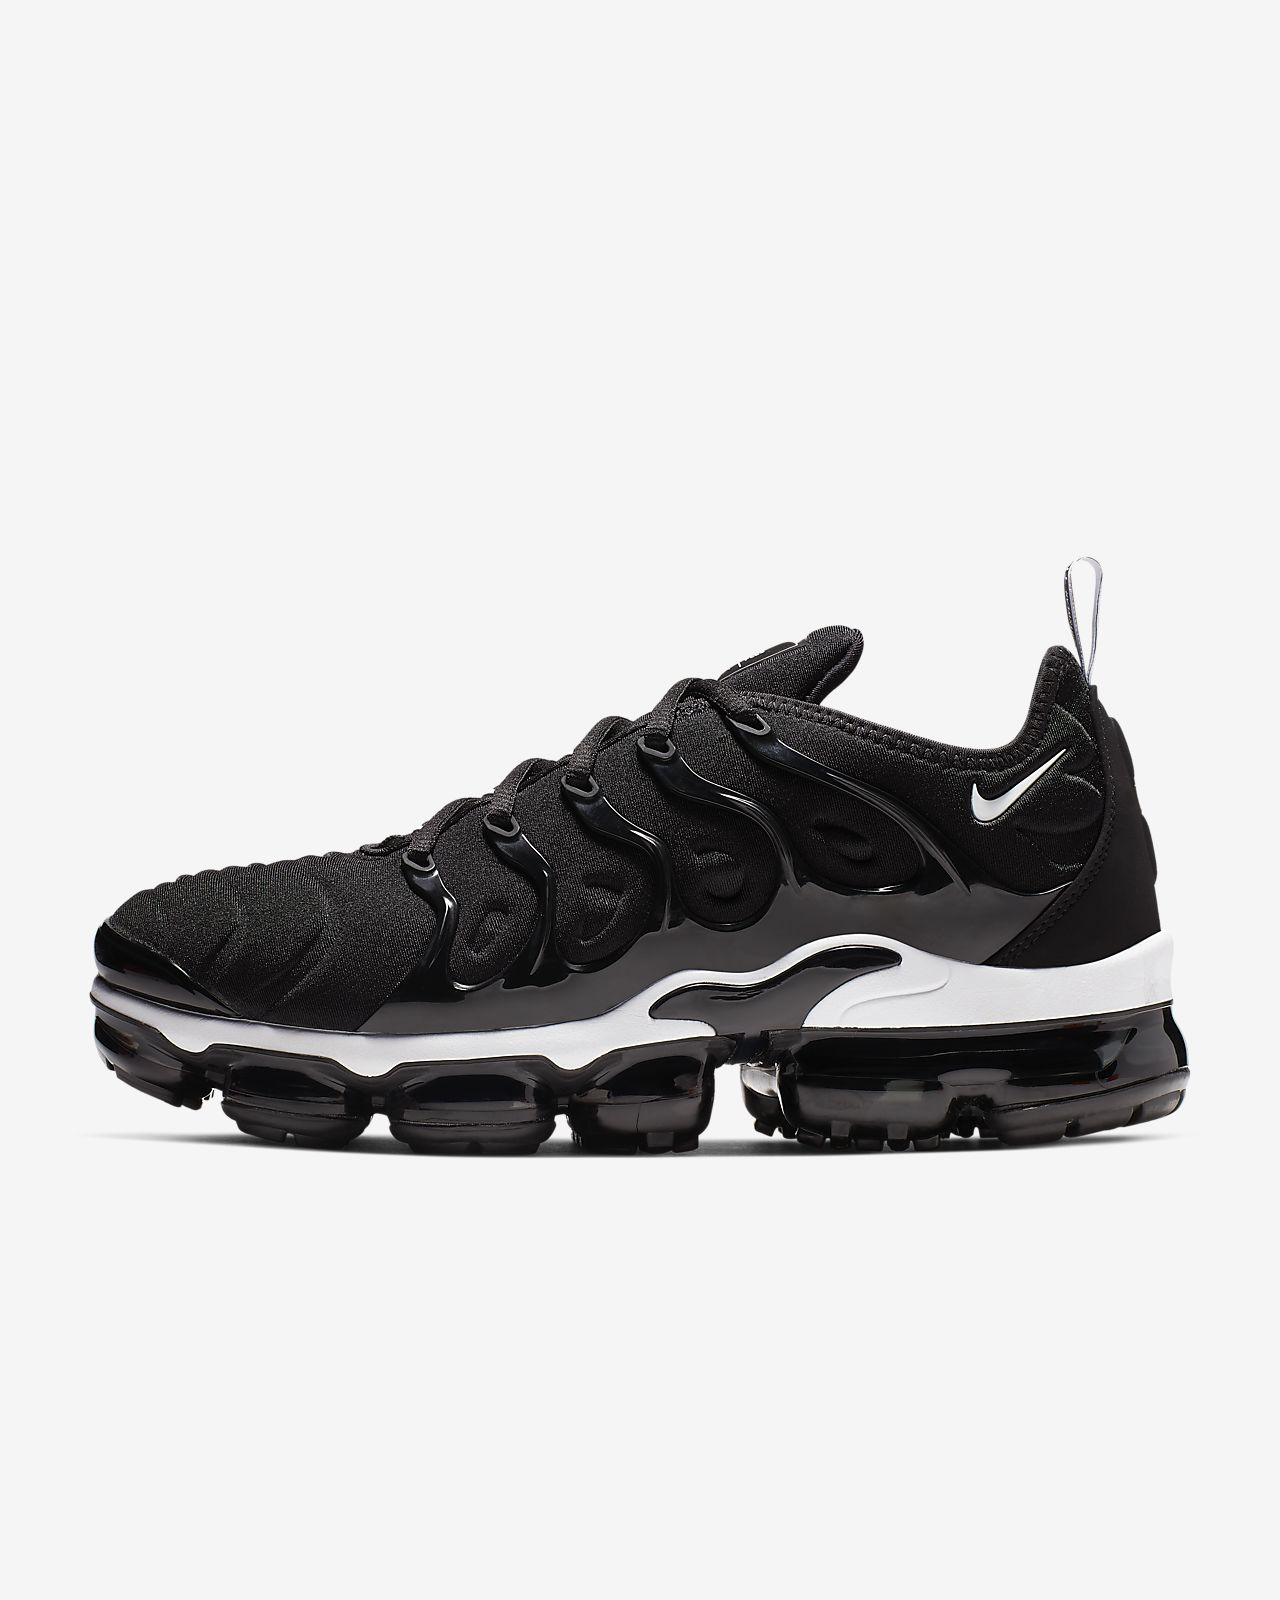 7038efb78f5 Nike Air VaporMax Plus Men s Shoe. Nike.com CA